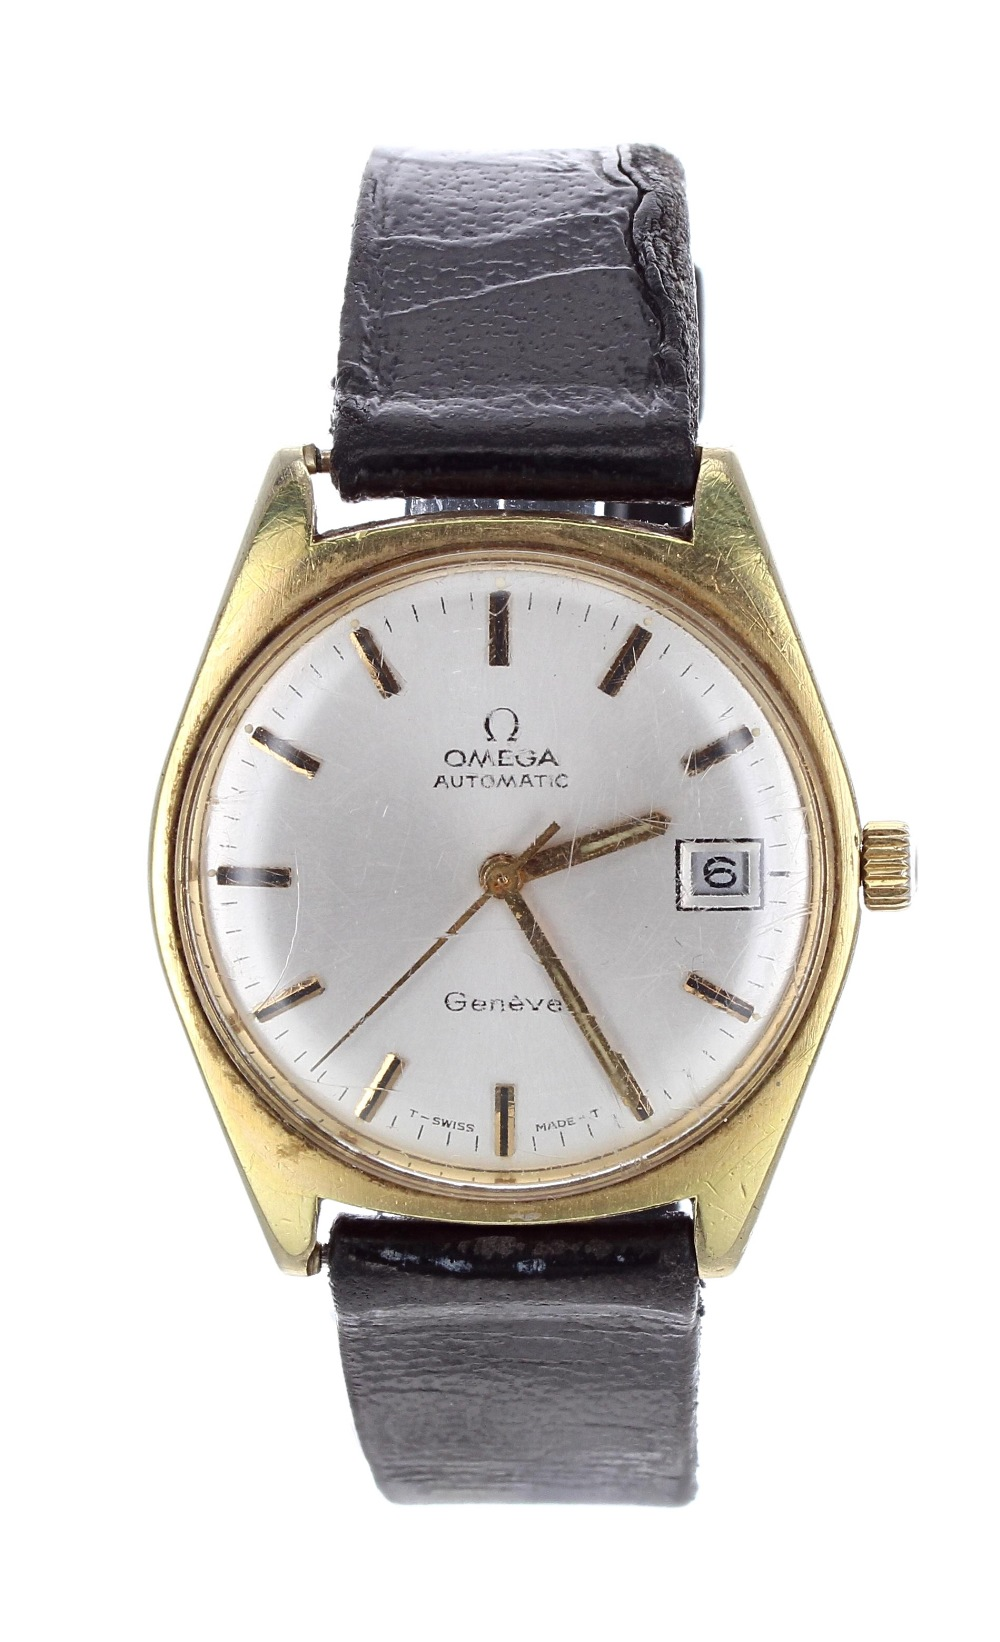 Lot 5 - Omega Genéve automatic gold plated and stainless steel gentleman's wristwatch, ref. 166.041, circa